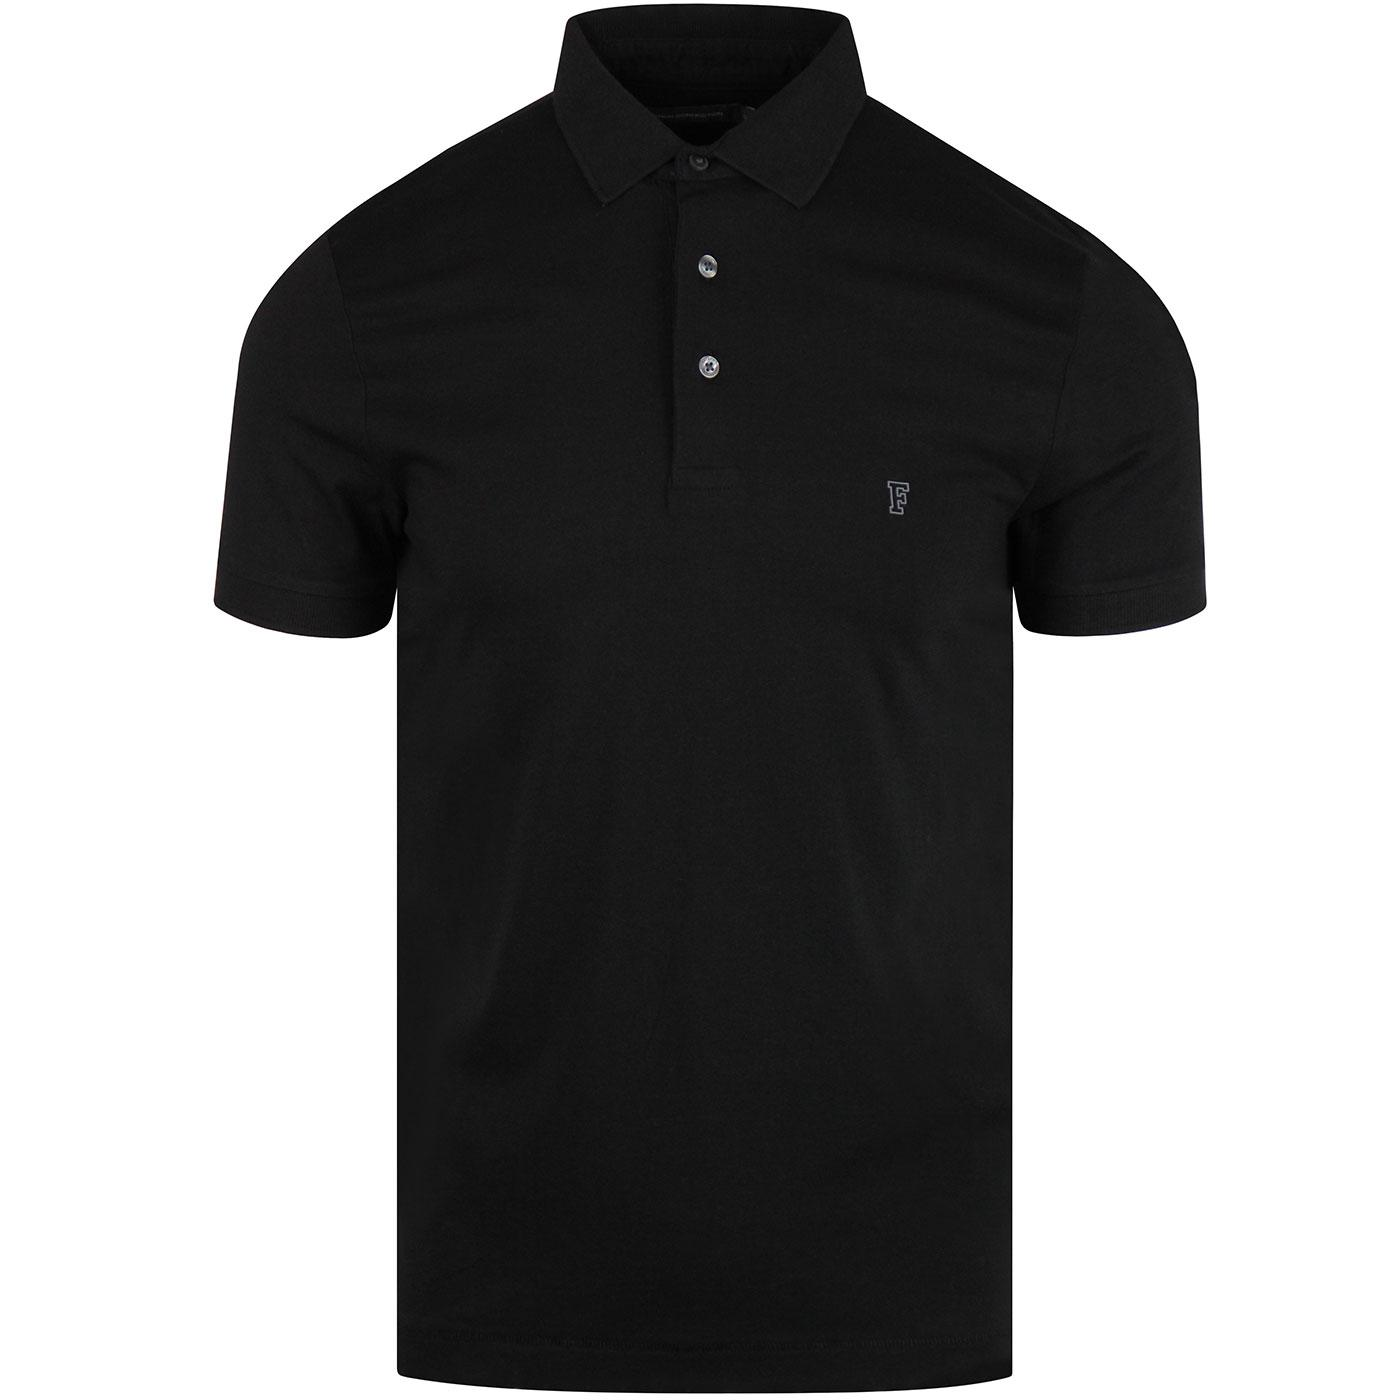 Sneezy FRENCH CONNECTION Mod Jersey Polo BLACK